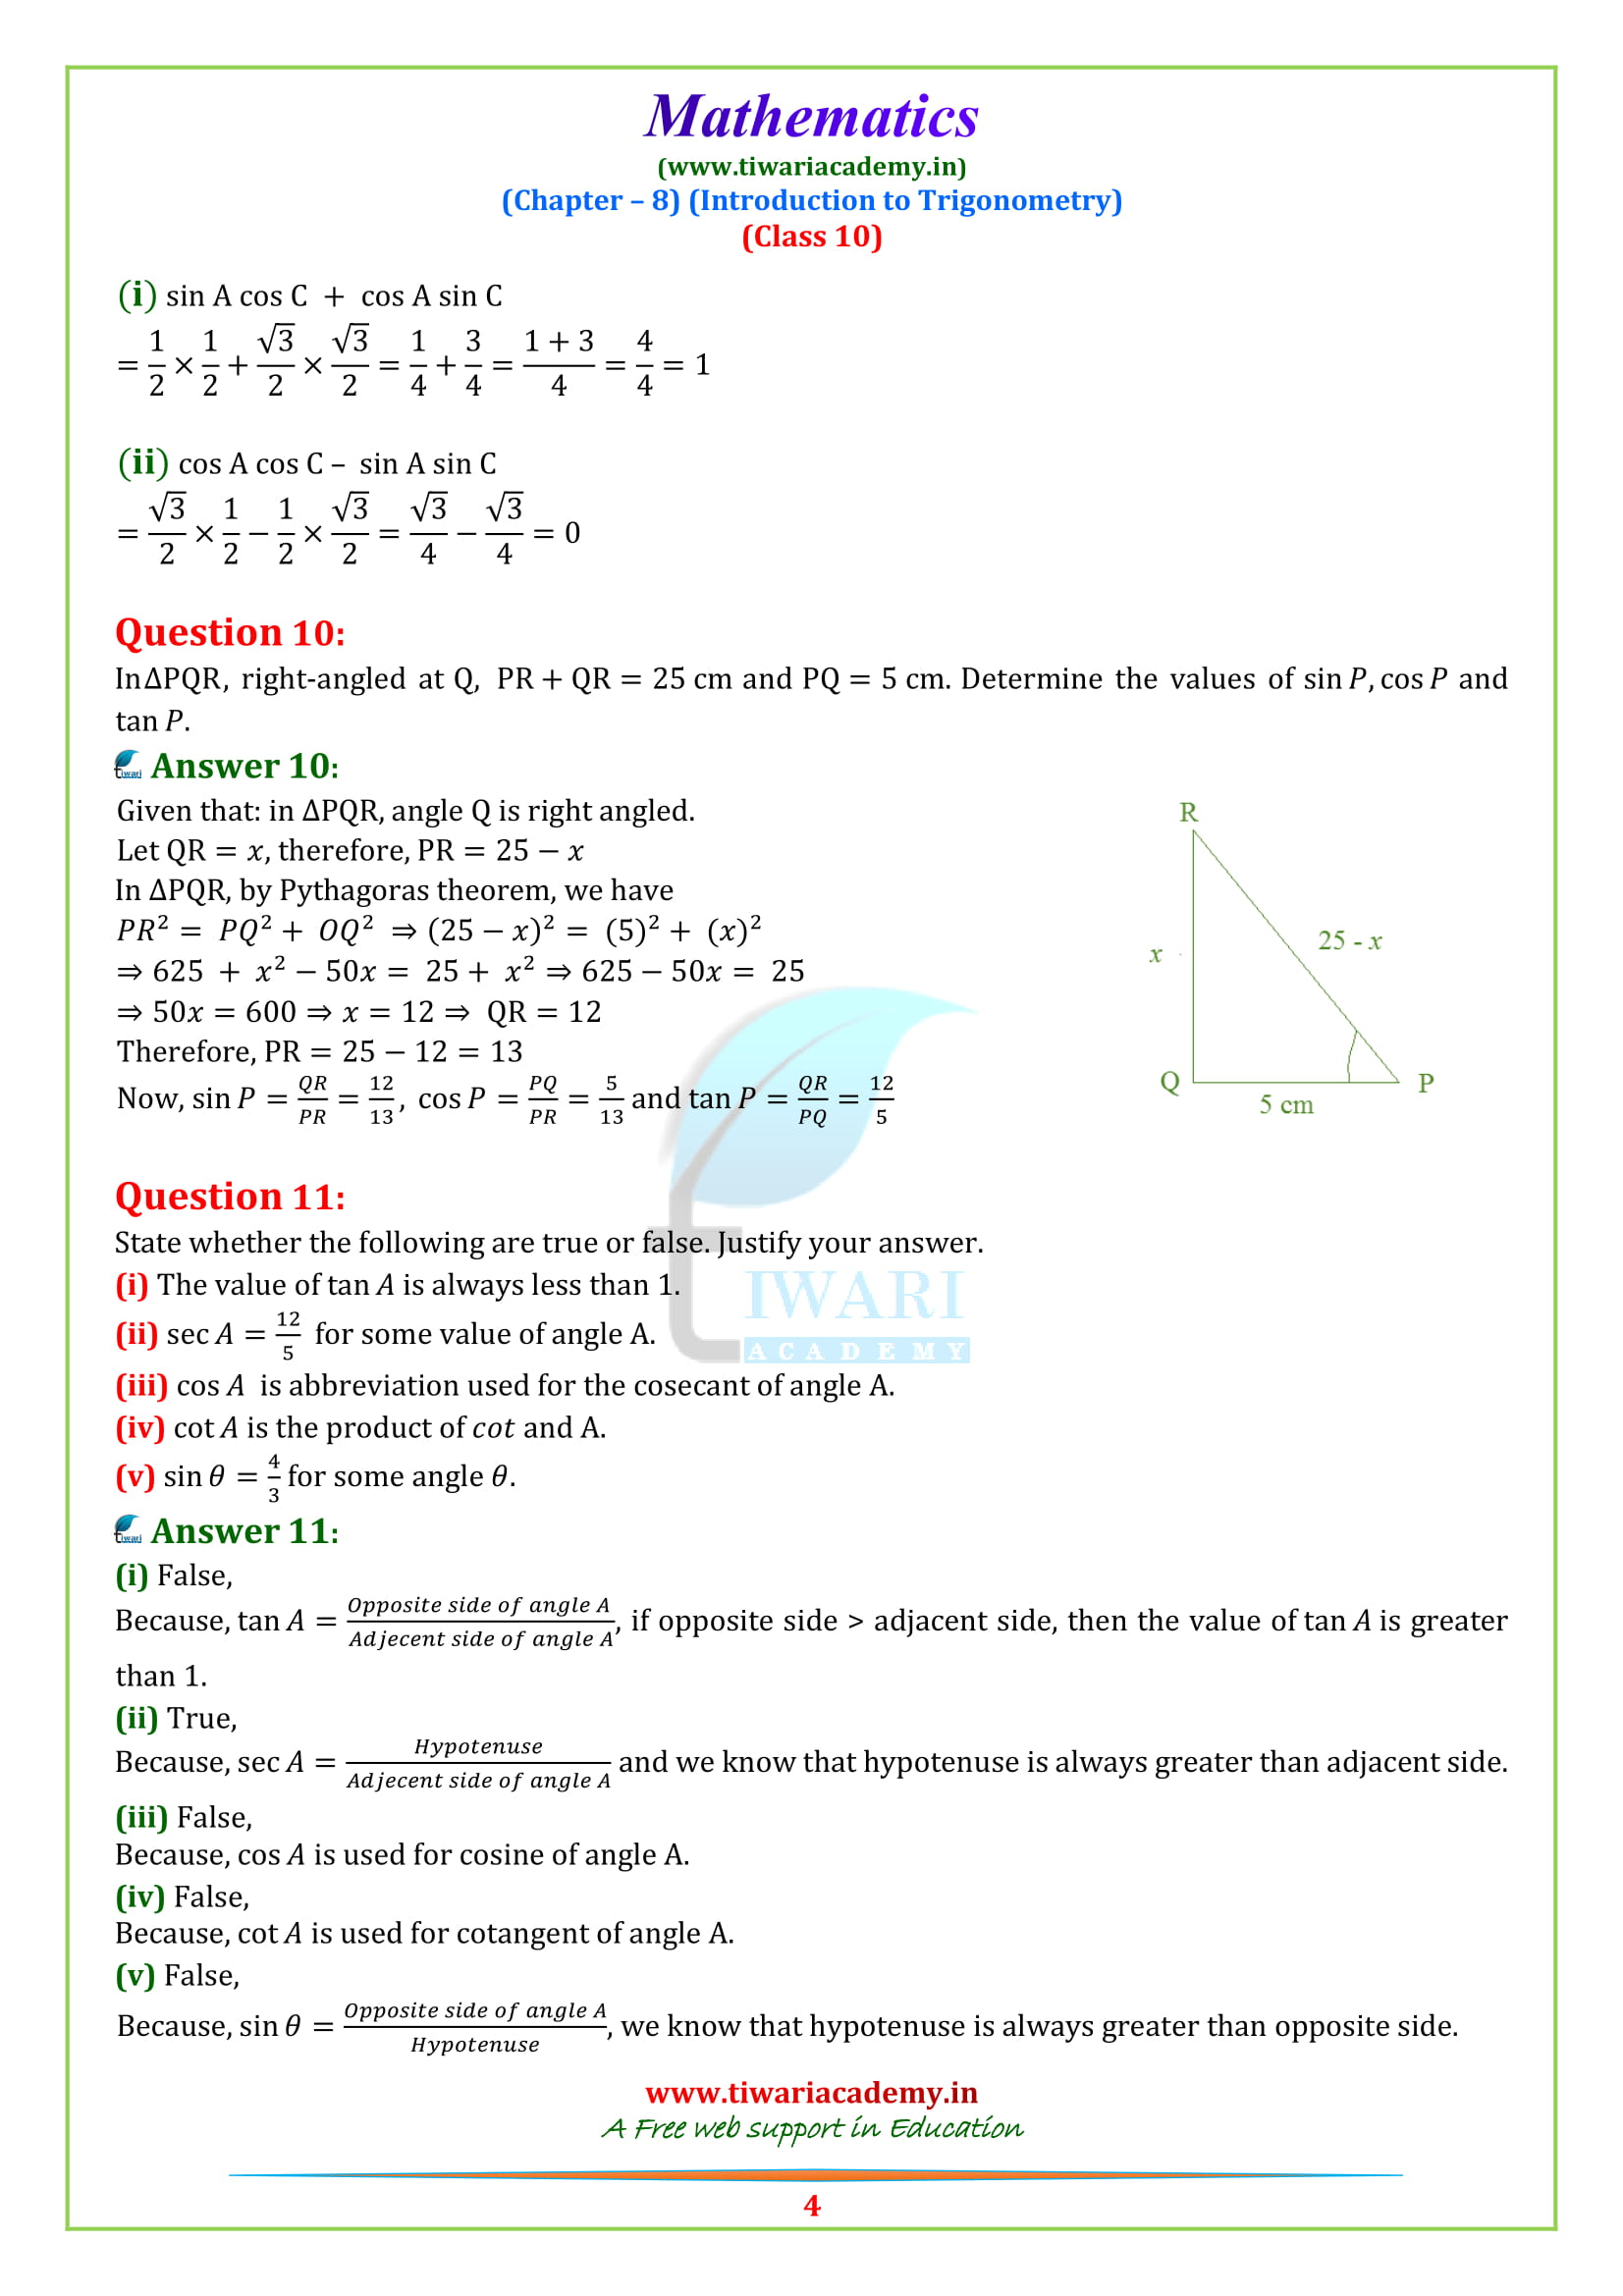 NCERT Solutions for class 10 Maths Chapter 8 Exercise 8.1 guide